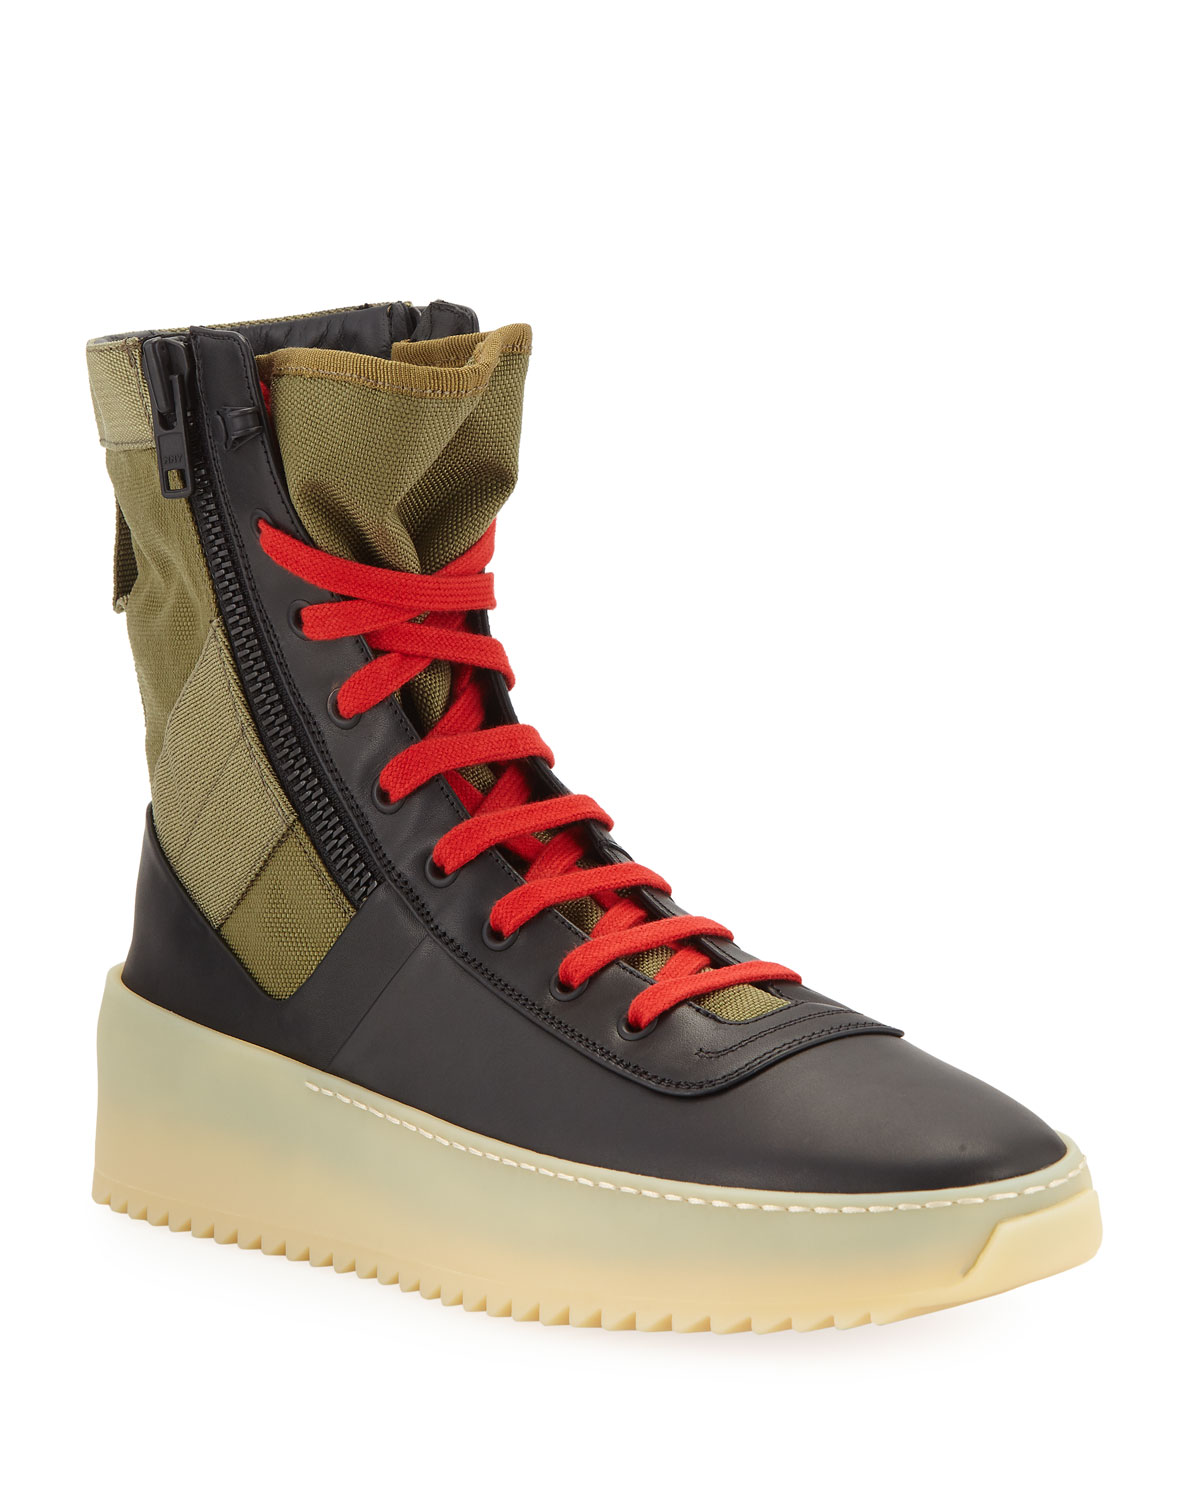 7ea73f8912c Fear of God Men s Jungle High-Top Sneakers with Canvas Insets ...